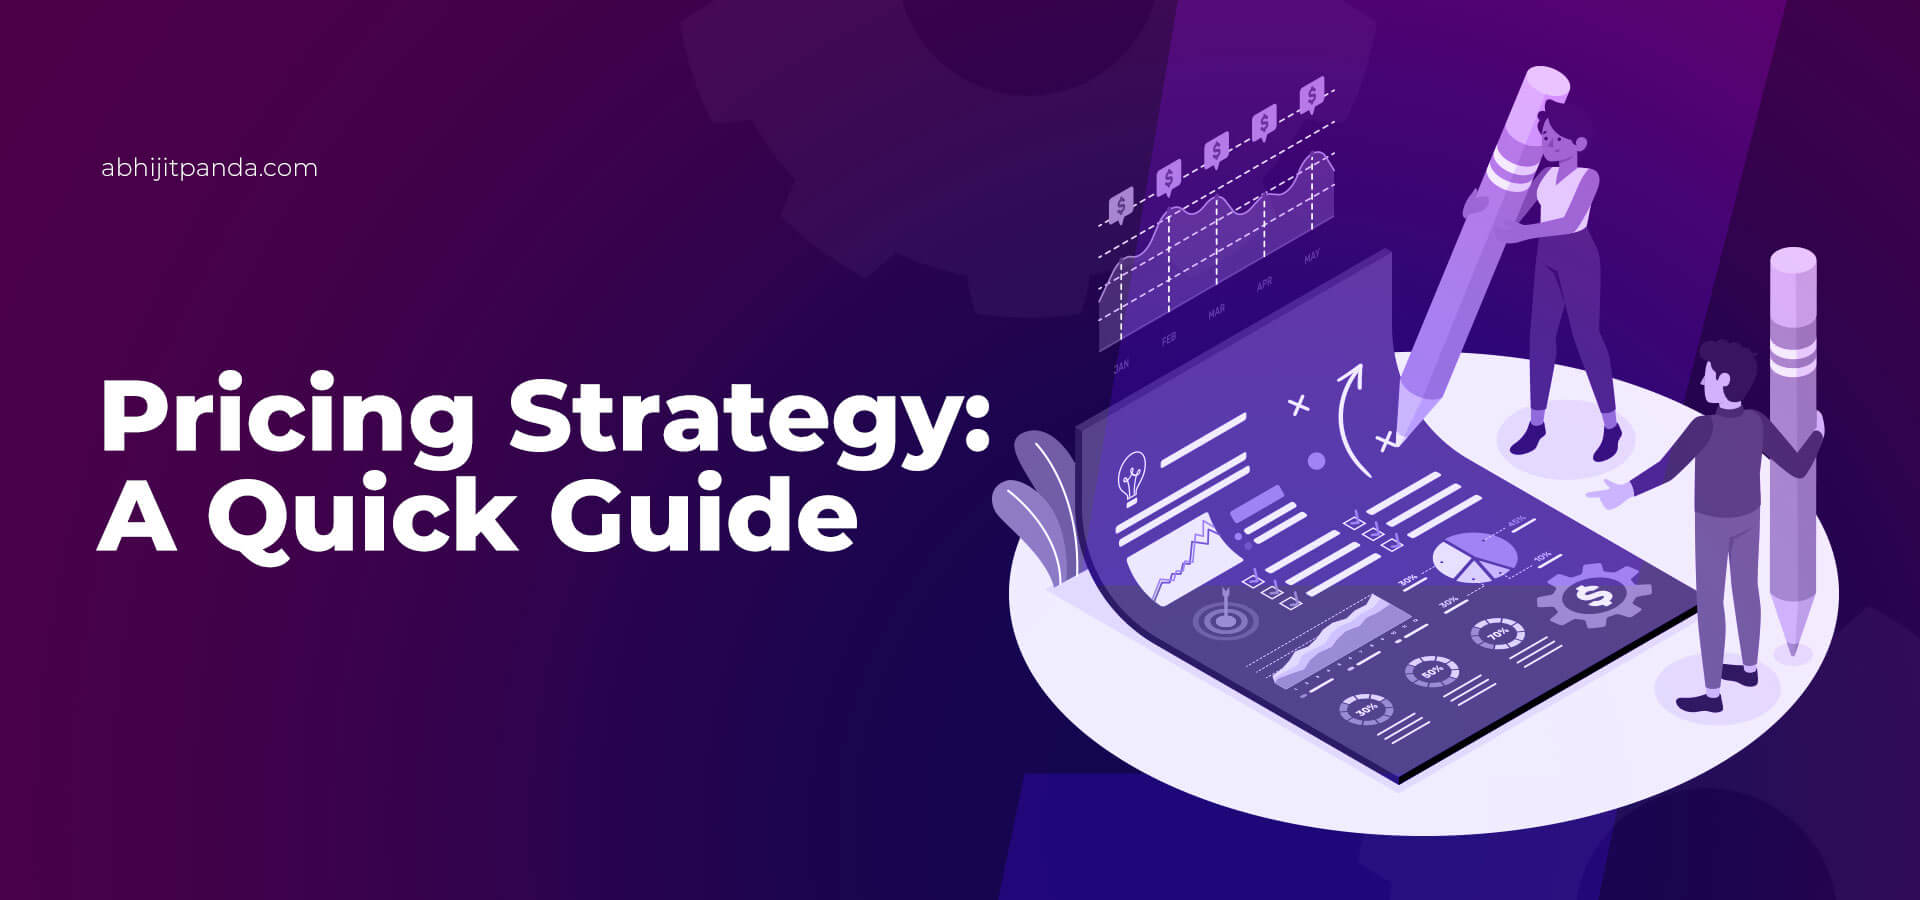 Pricing Strategy: A Quick Guide